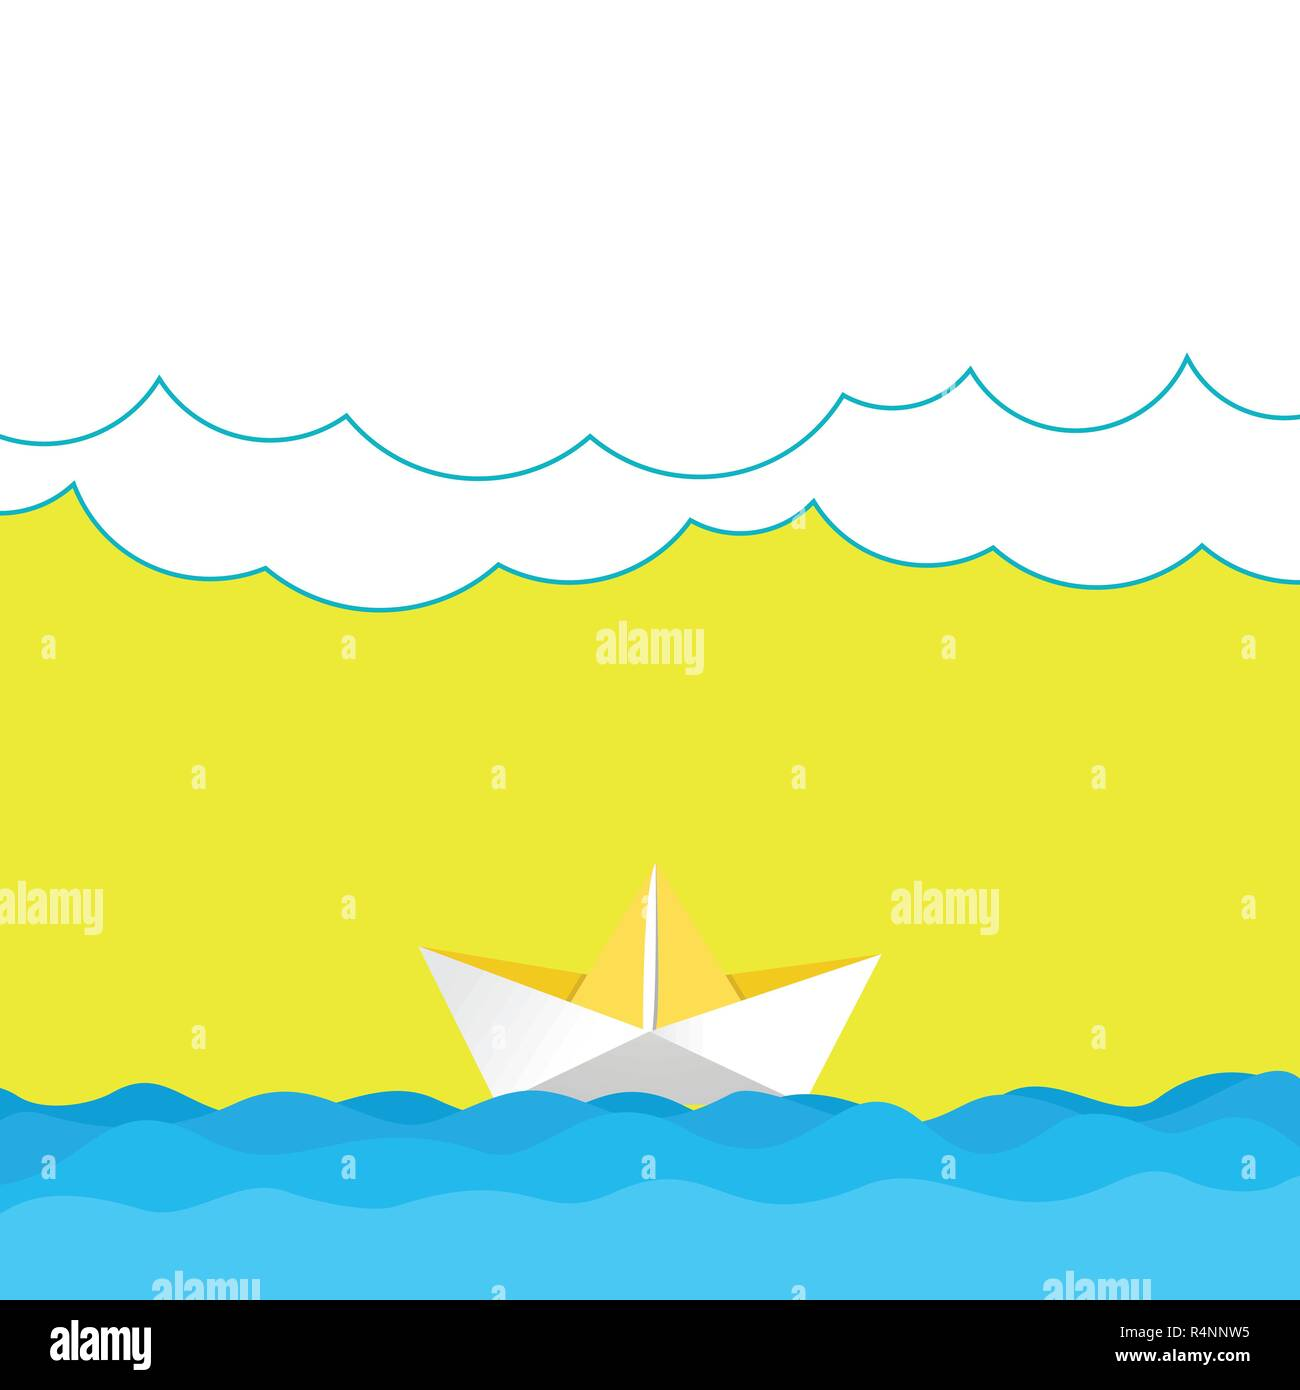 Business Empty Template For Layout Invitation Greeting Card Promotion Poster Voucher Wave Heavy Clouds And Paper Boat Seascape Scene Vector Blank